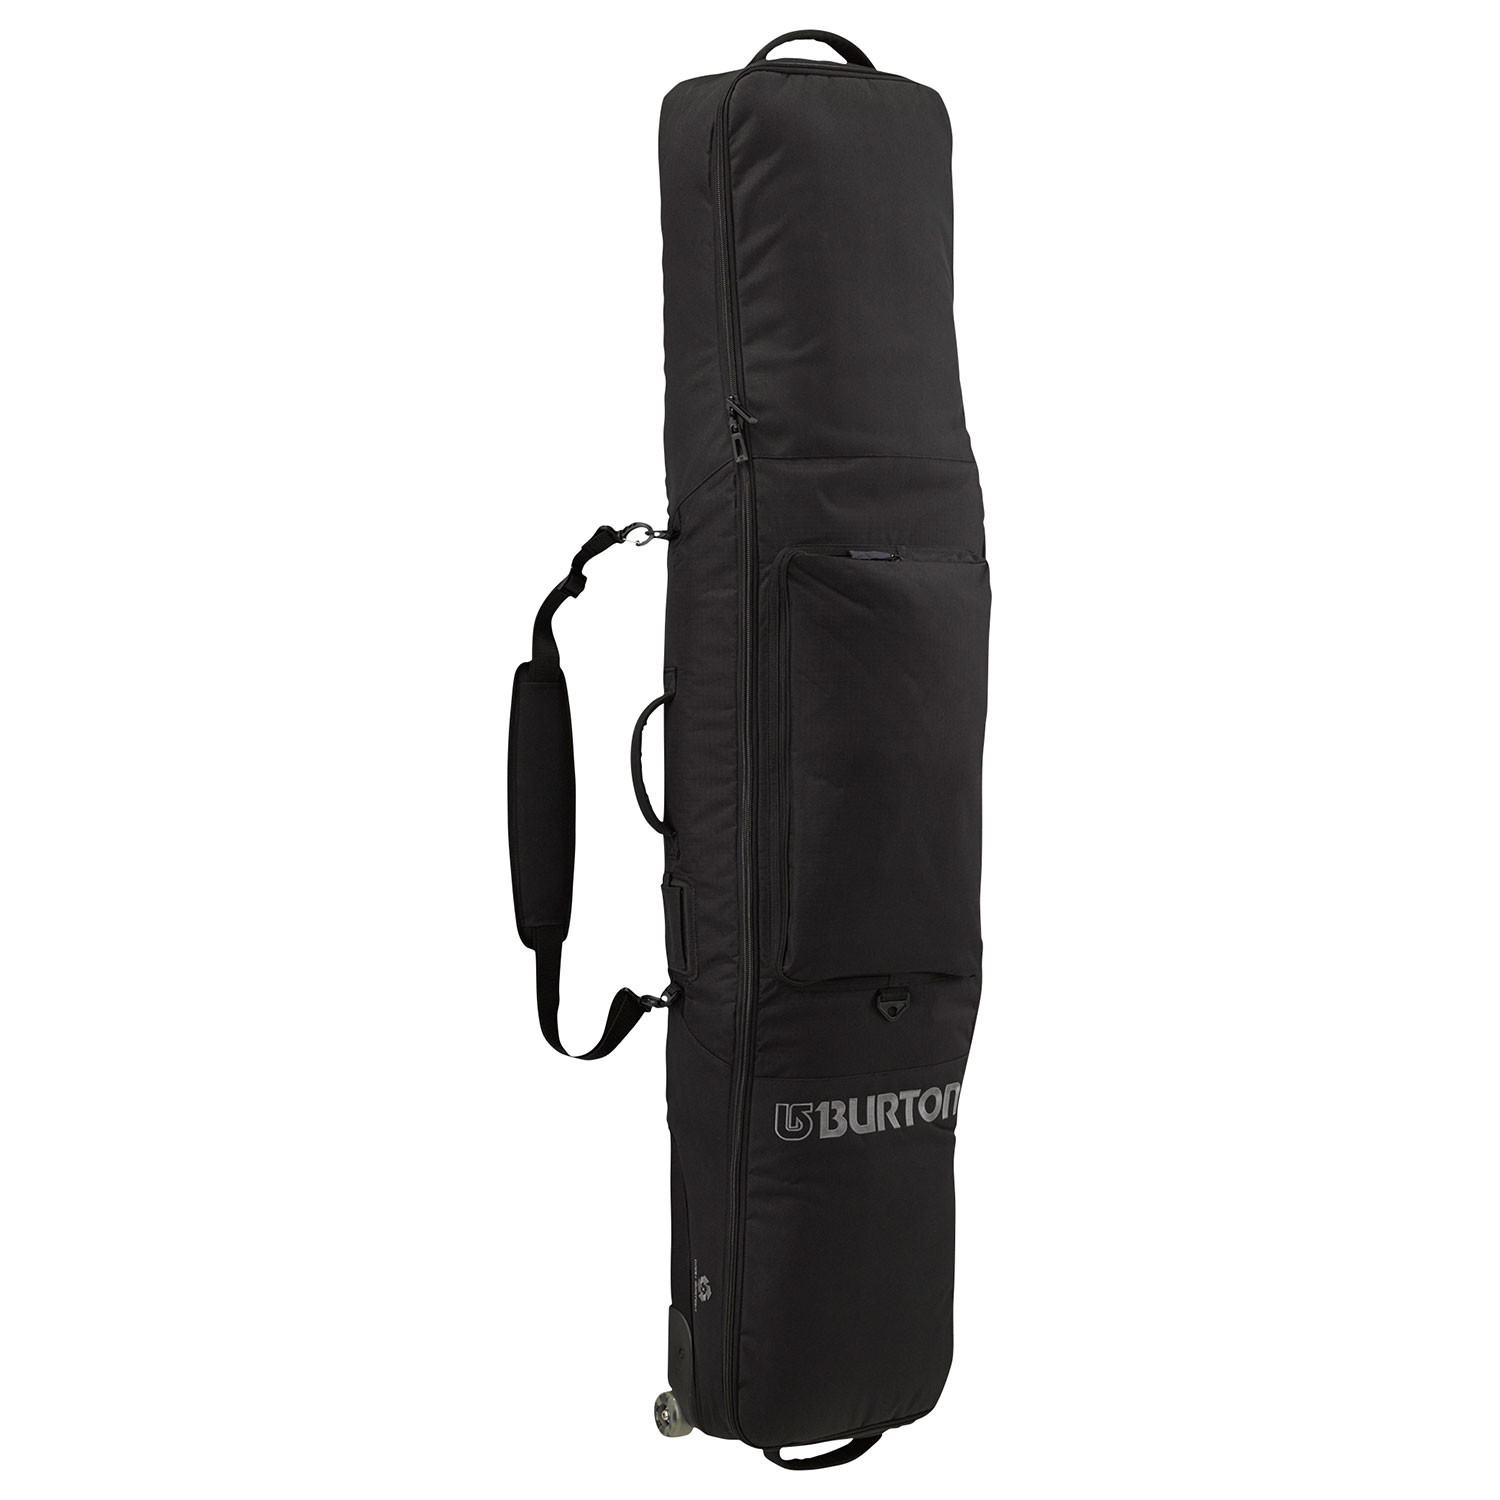 Obal na snowboard Burton Wheelie Gig Bag true black